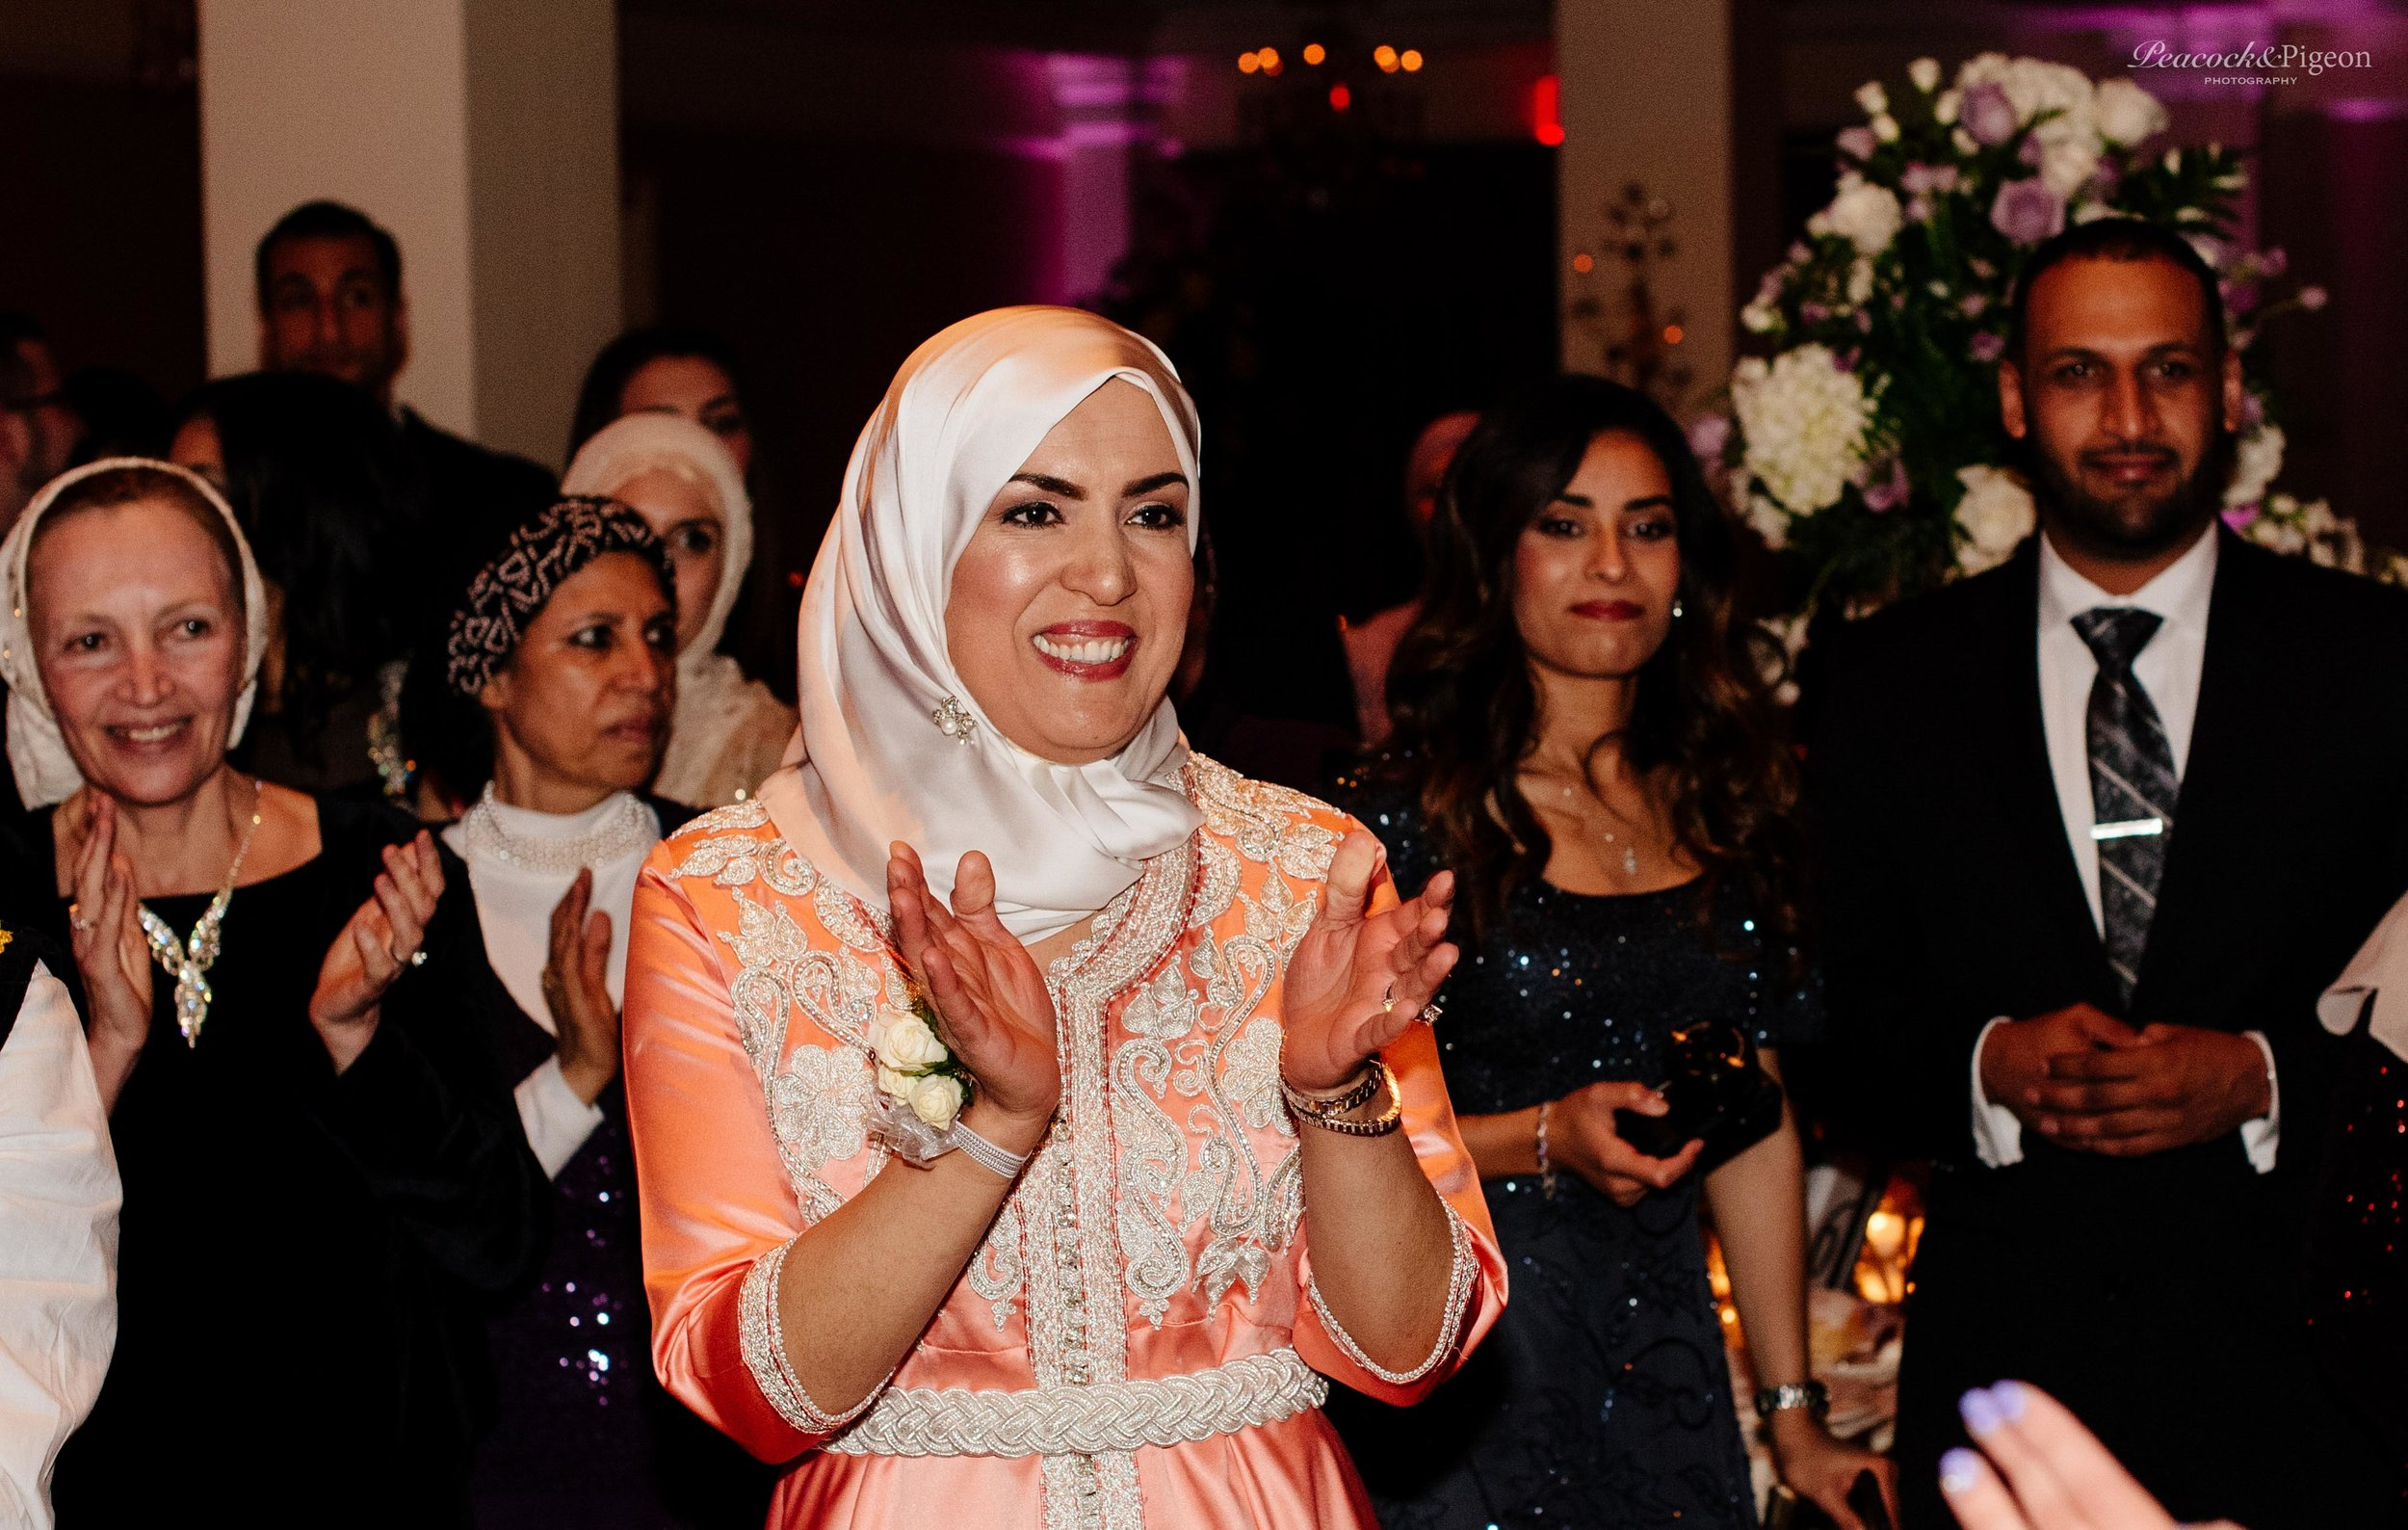 The_Wedding_of_Radwa_and_Kareem_at_Somerset_Palace_Part_Eleven_Before_Dinner-Watermarked-22.jpg